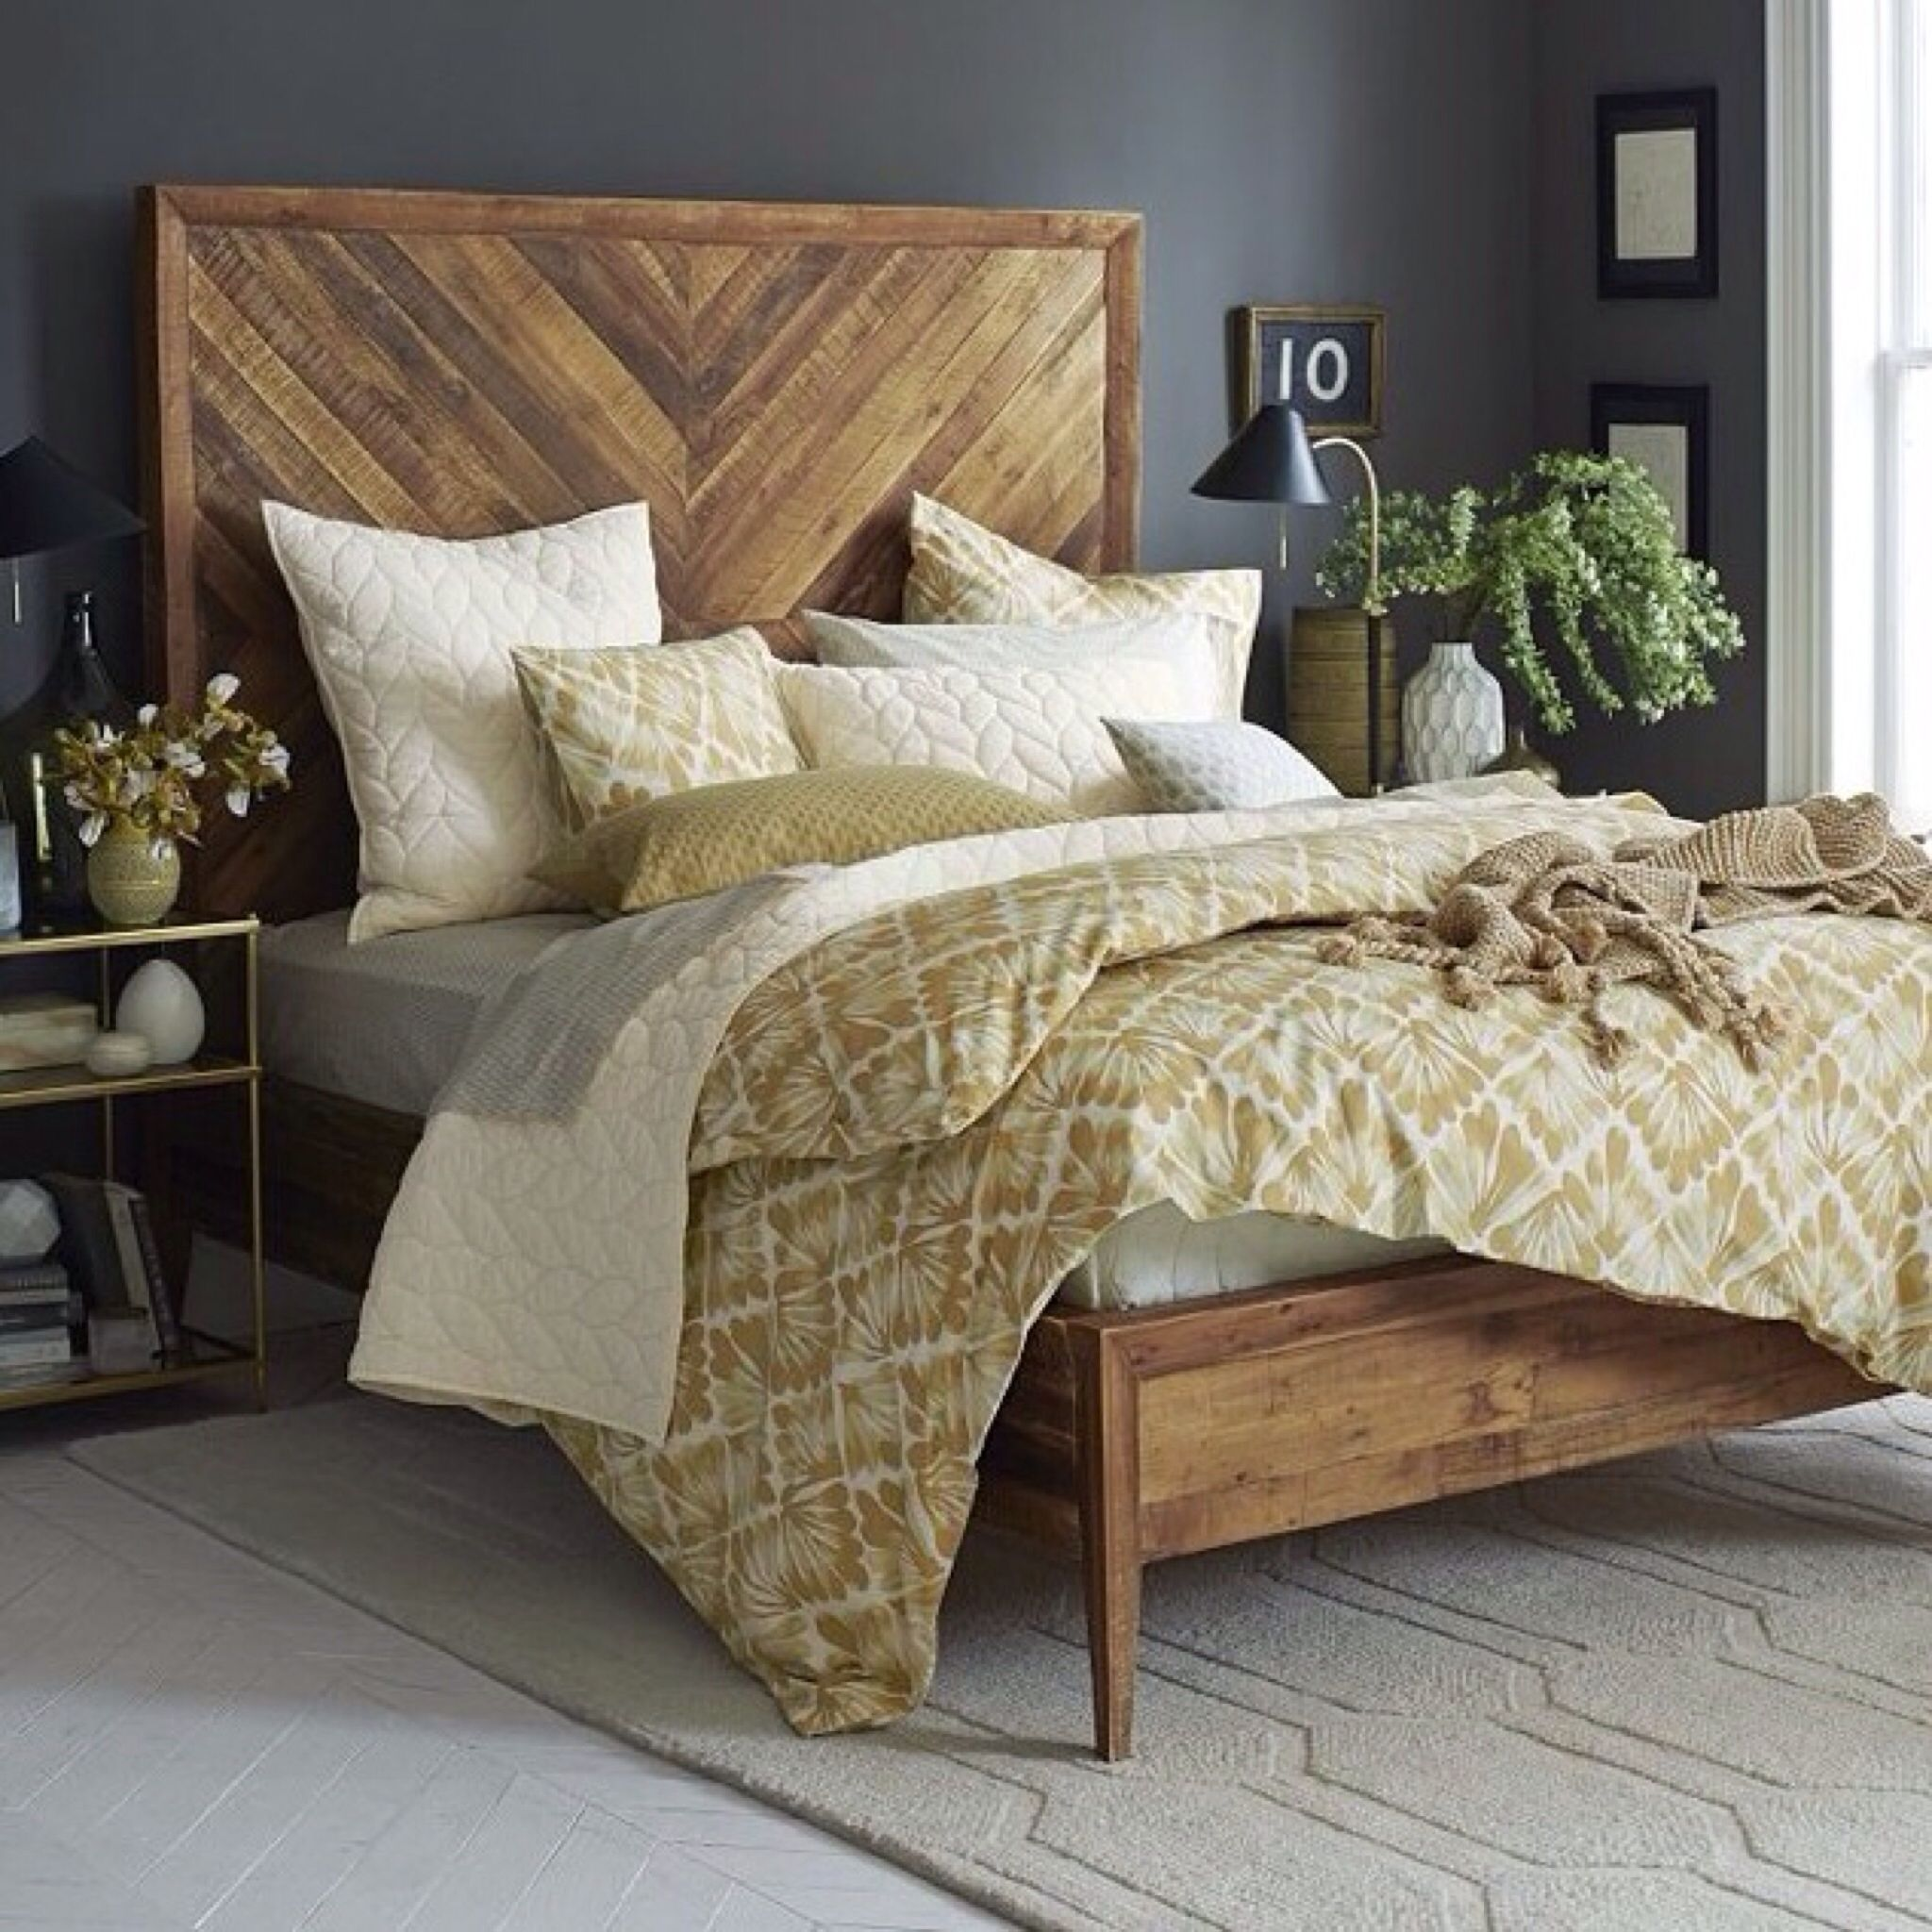 Navy Headboard taller wood pattern Bed floating